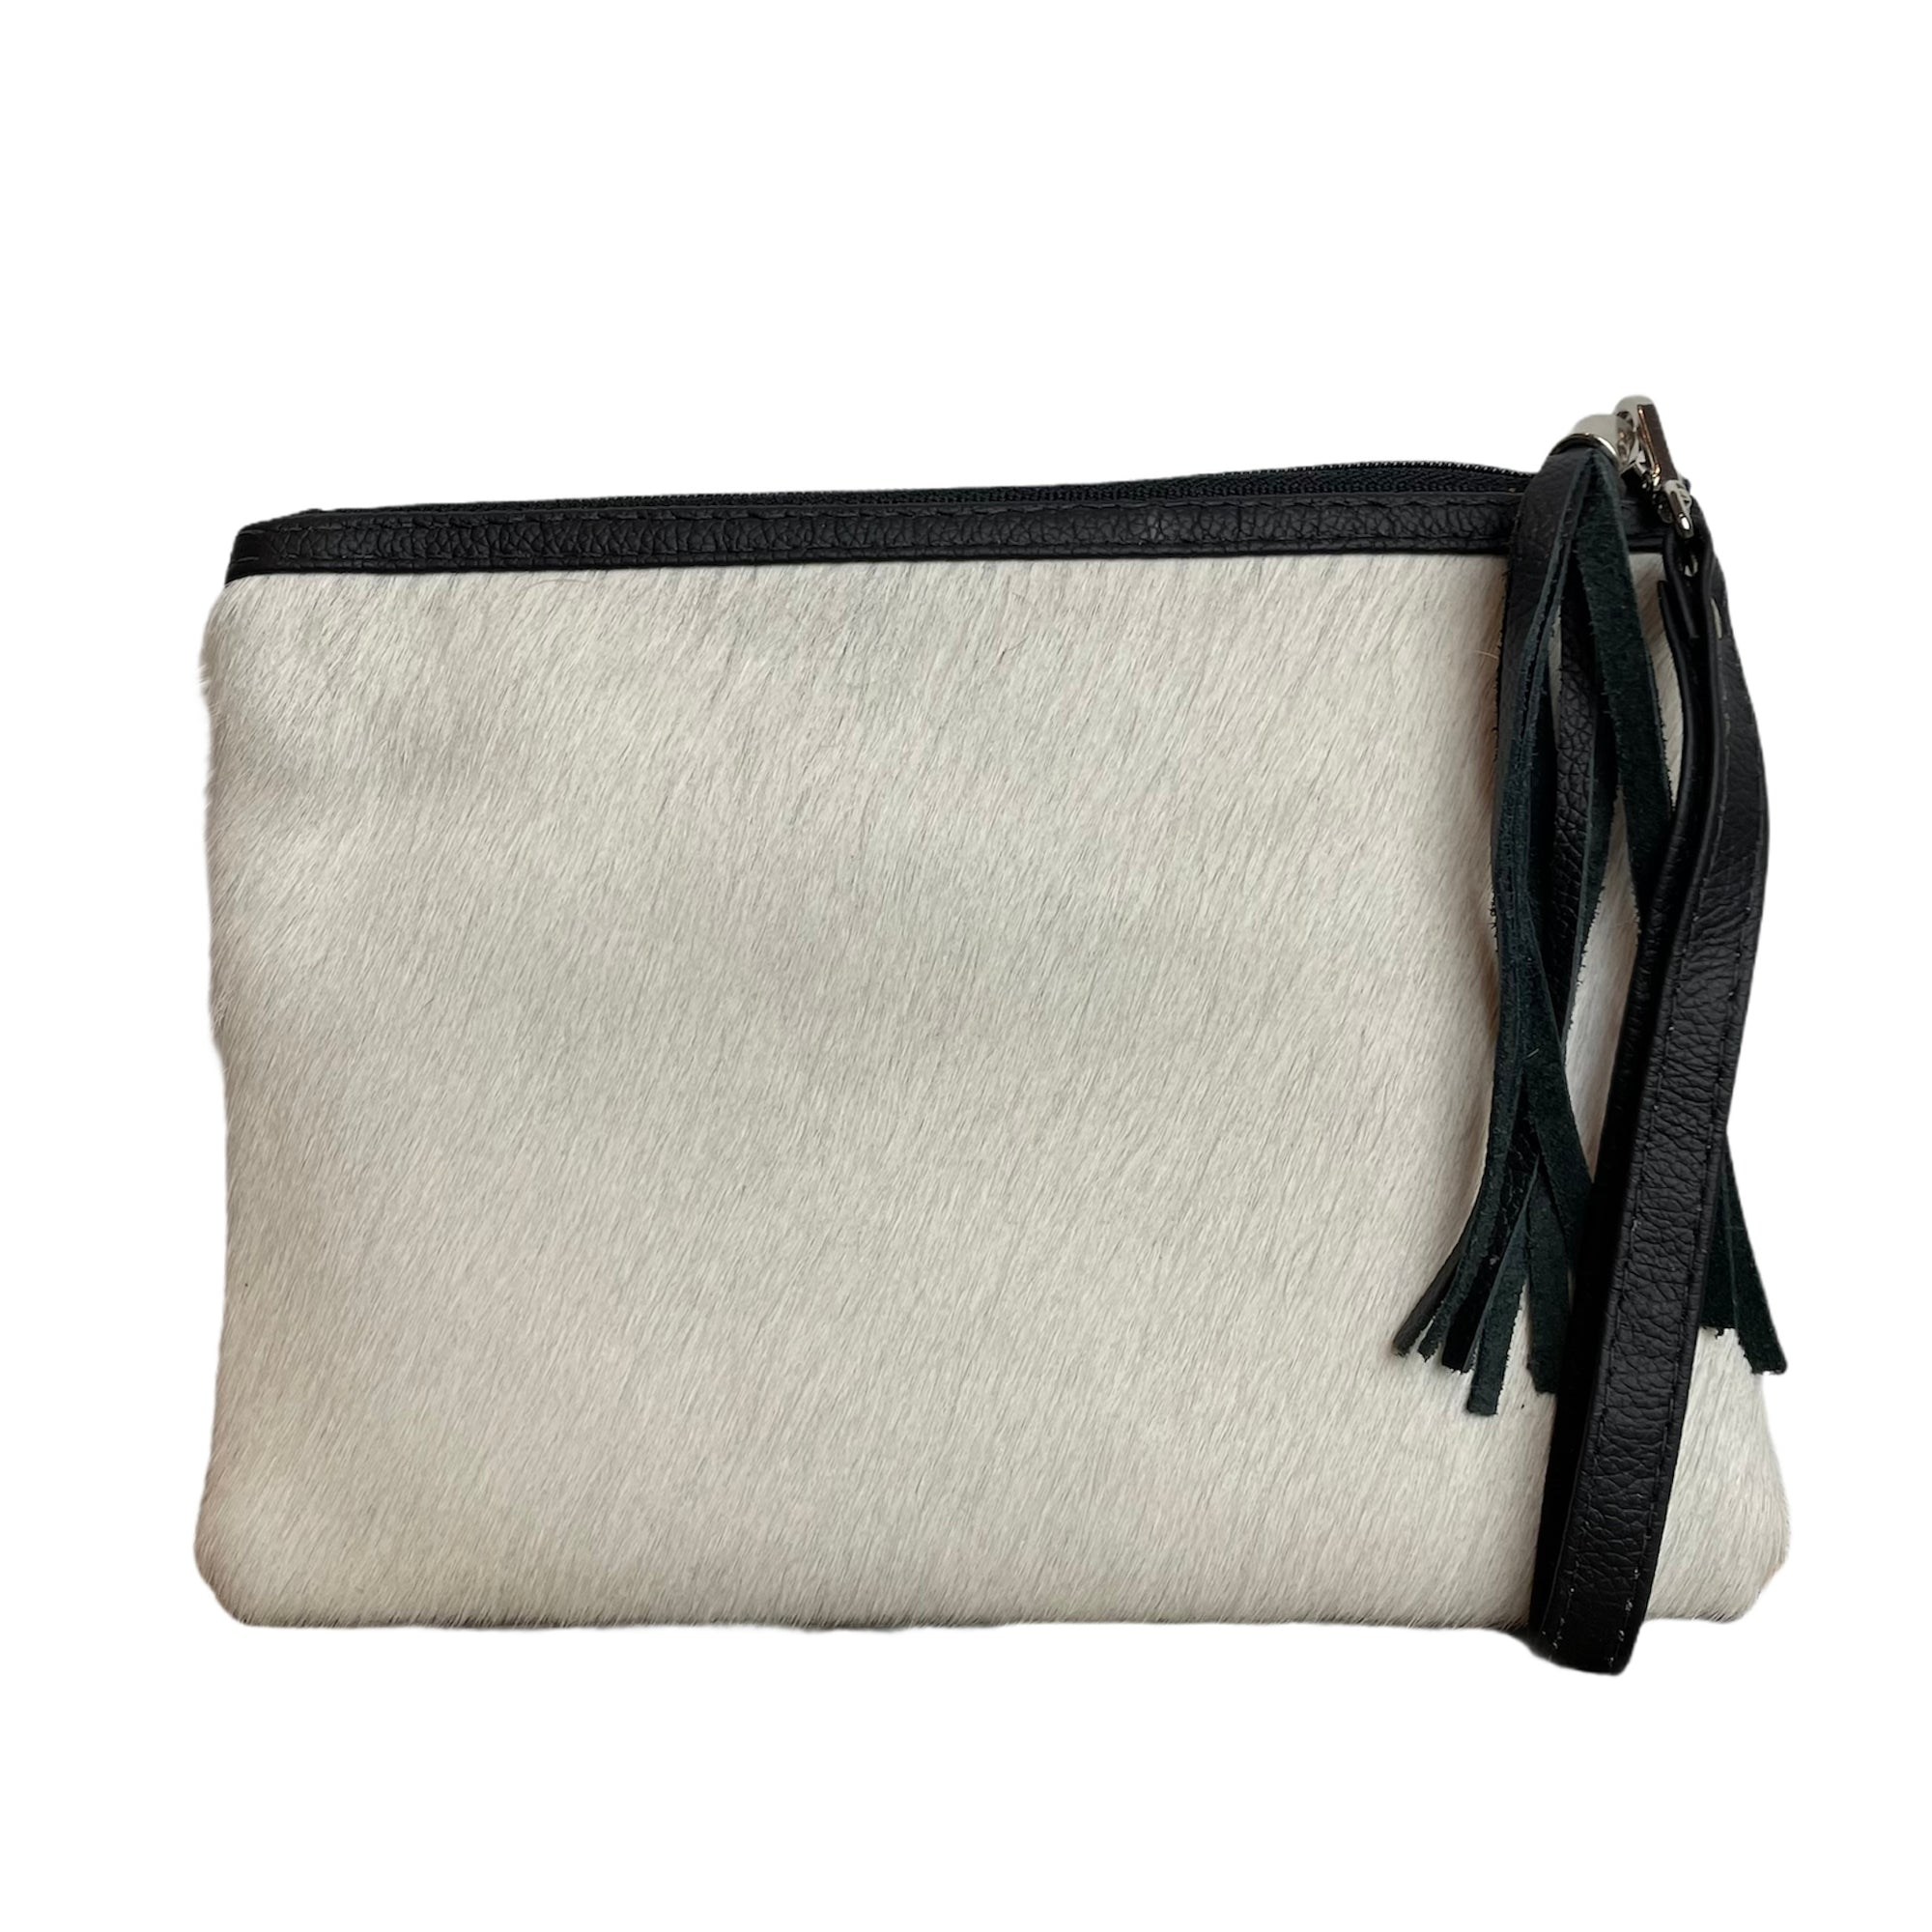 COWHIDE EVERYDAY SMALL CLUTCH - PURE WHITE. Izel Designs